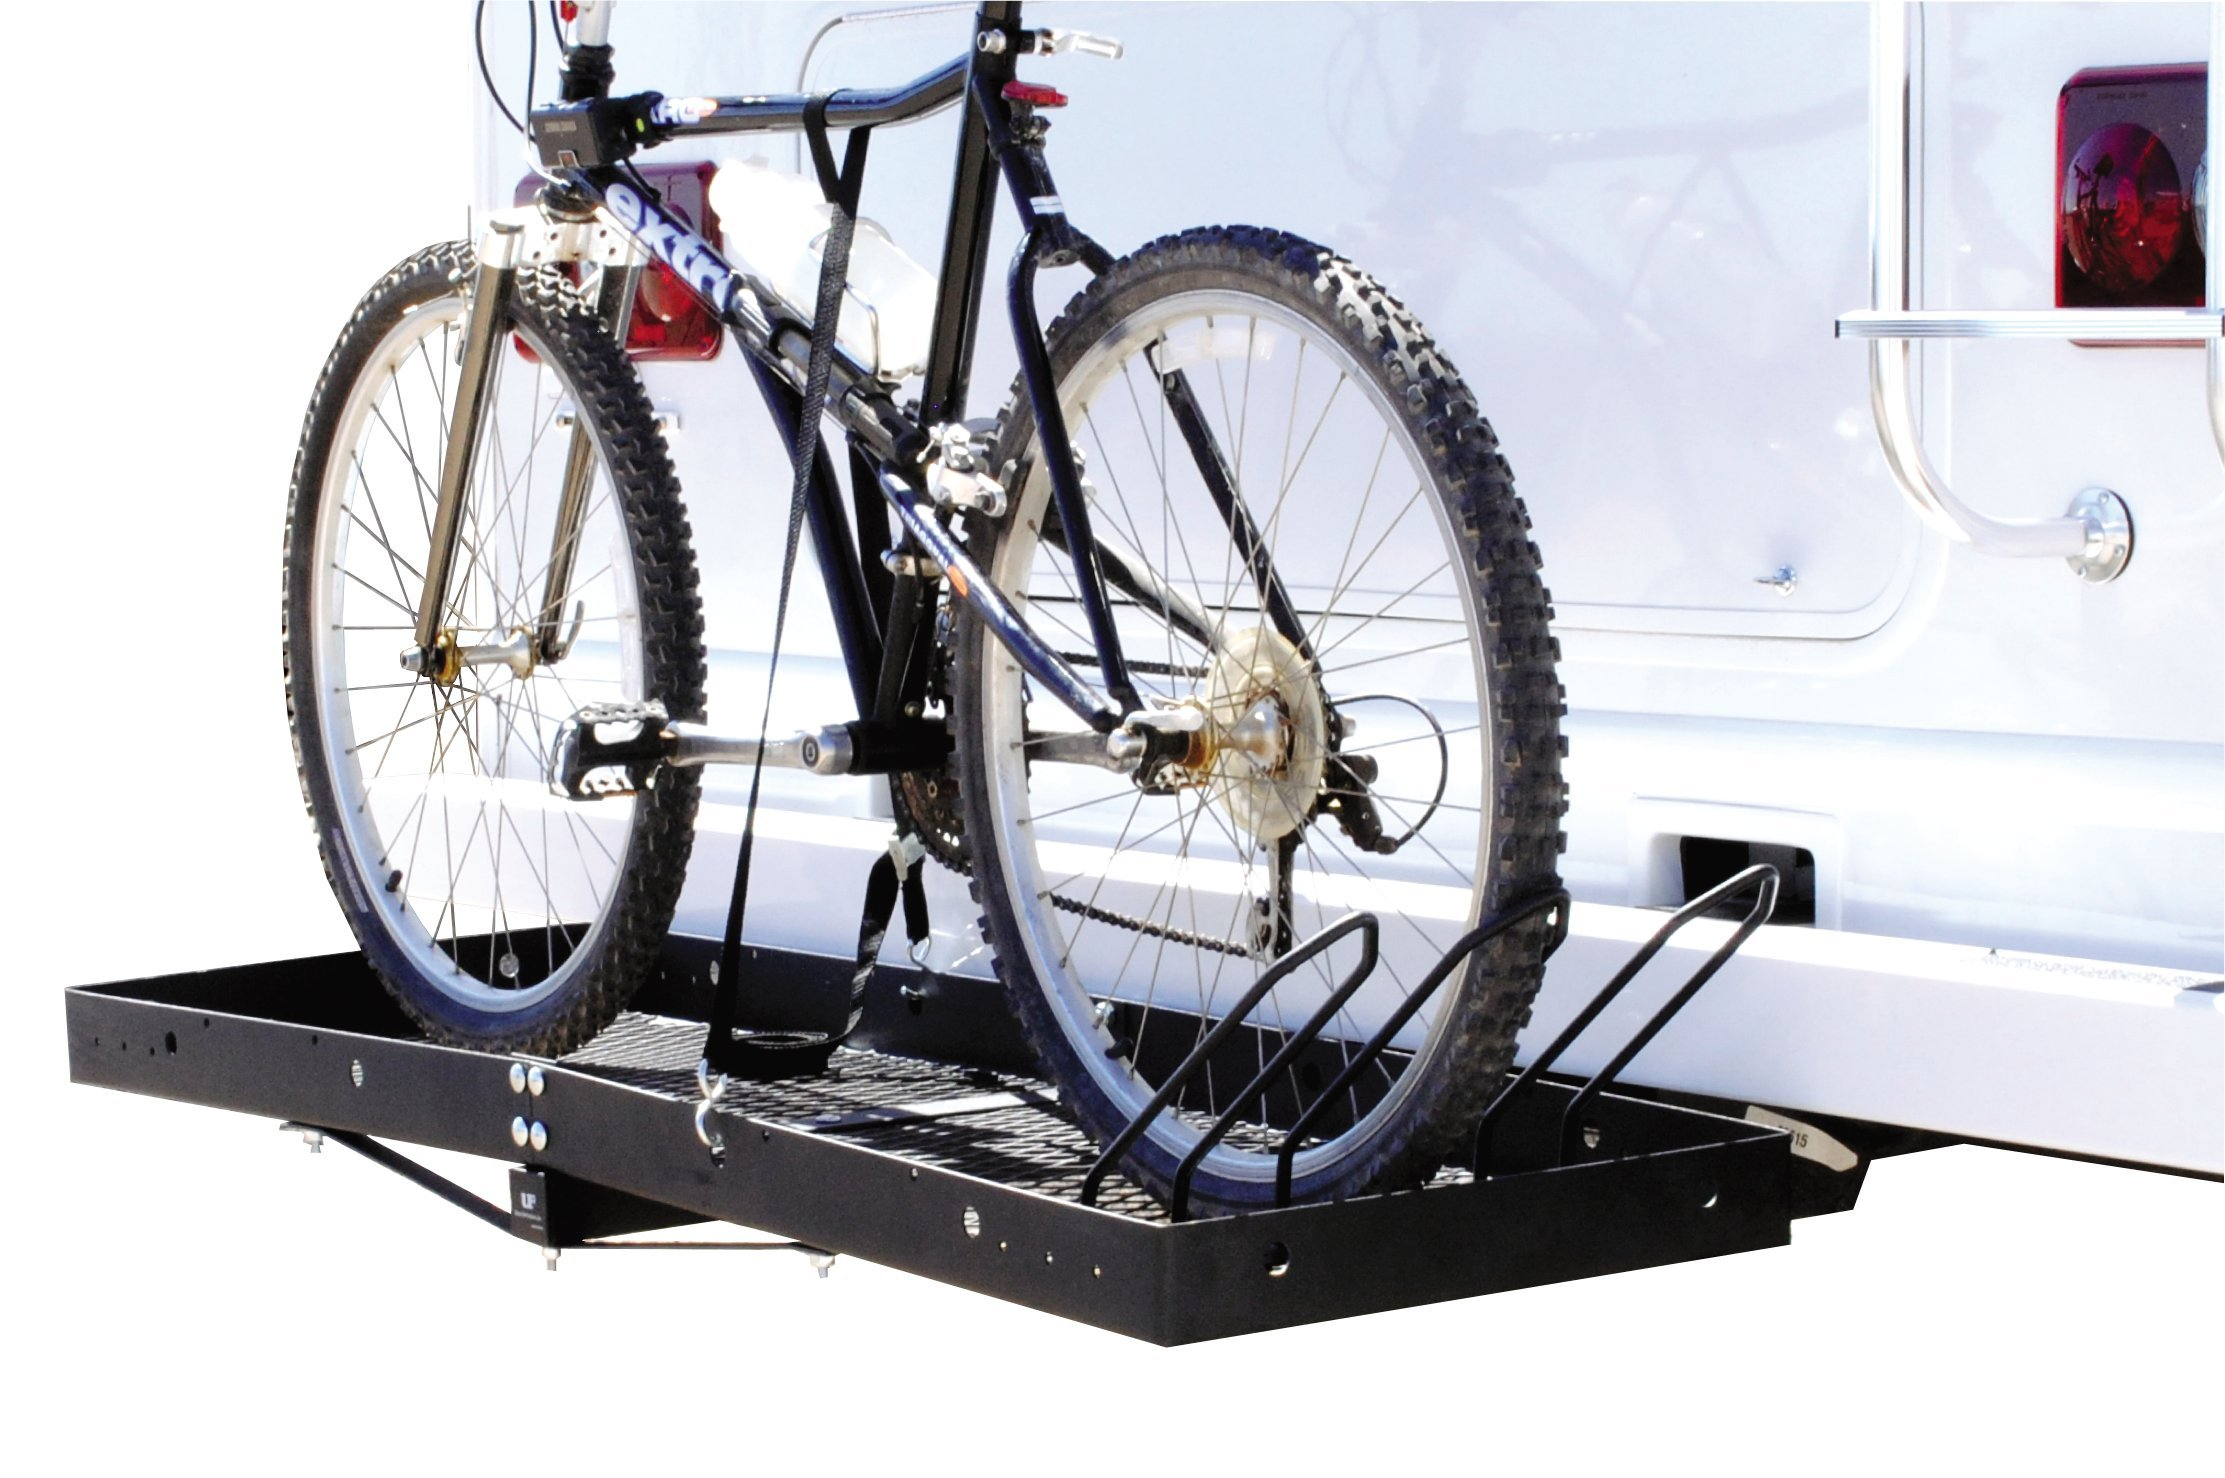 Ultra-Fab Products 48-979030 - Bike Rack Accessory - 3 loops - Optional Cargo Carrier Accessory